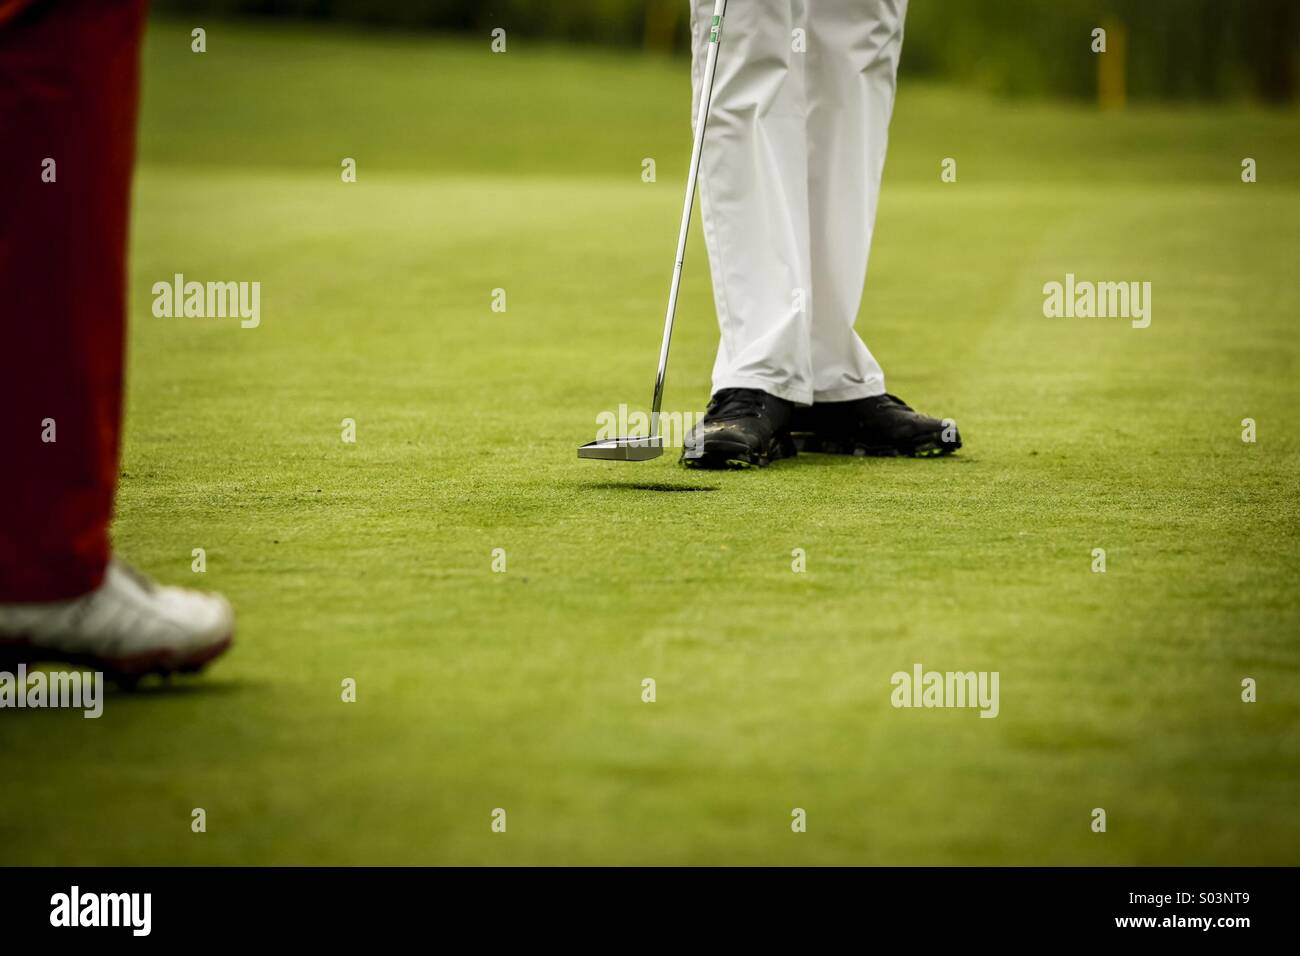 Golf players at hole - Stock Image